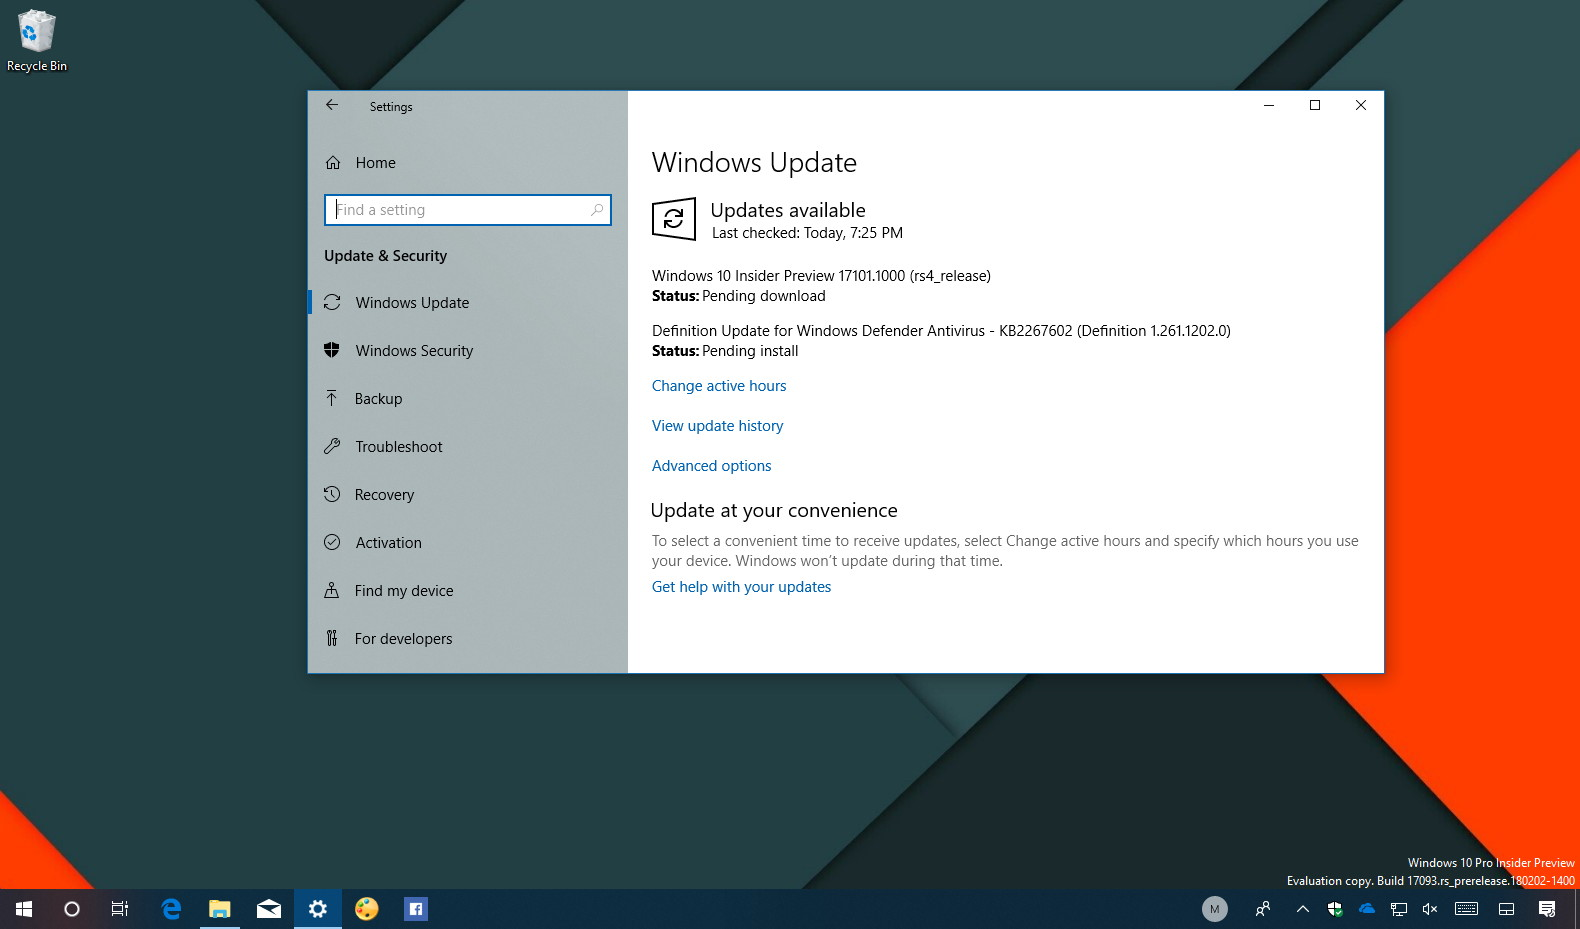 Windows 10 build 17101